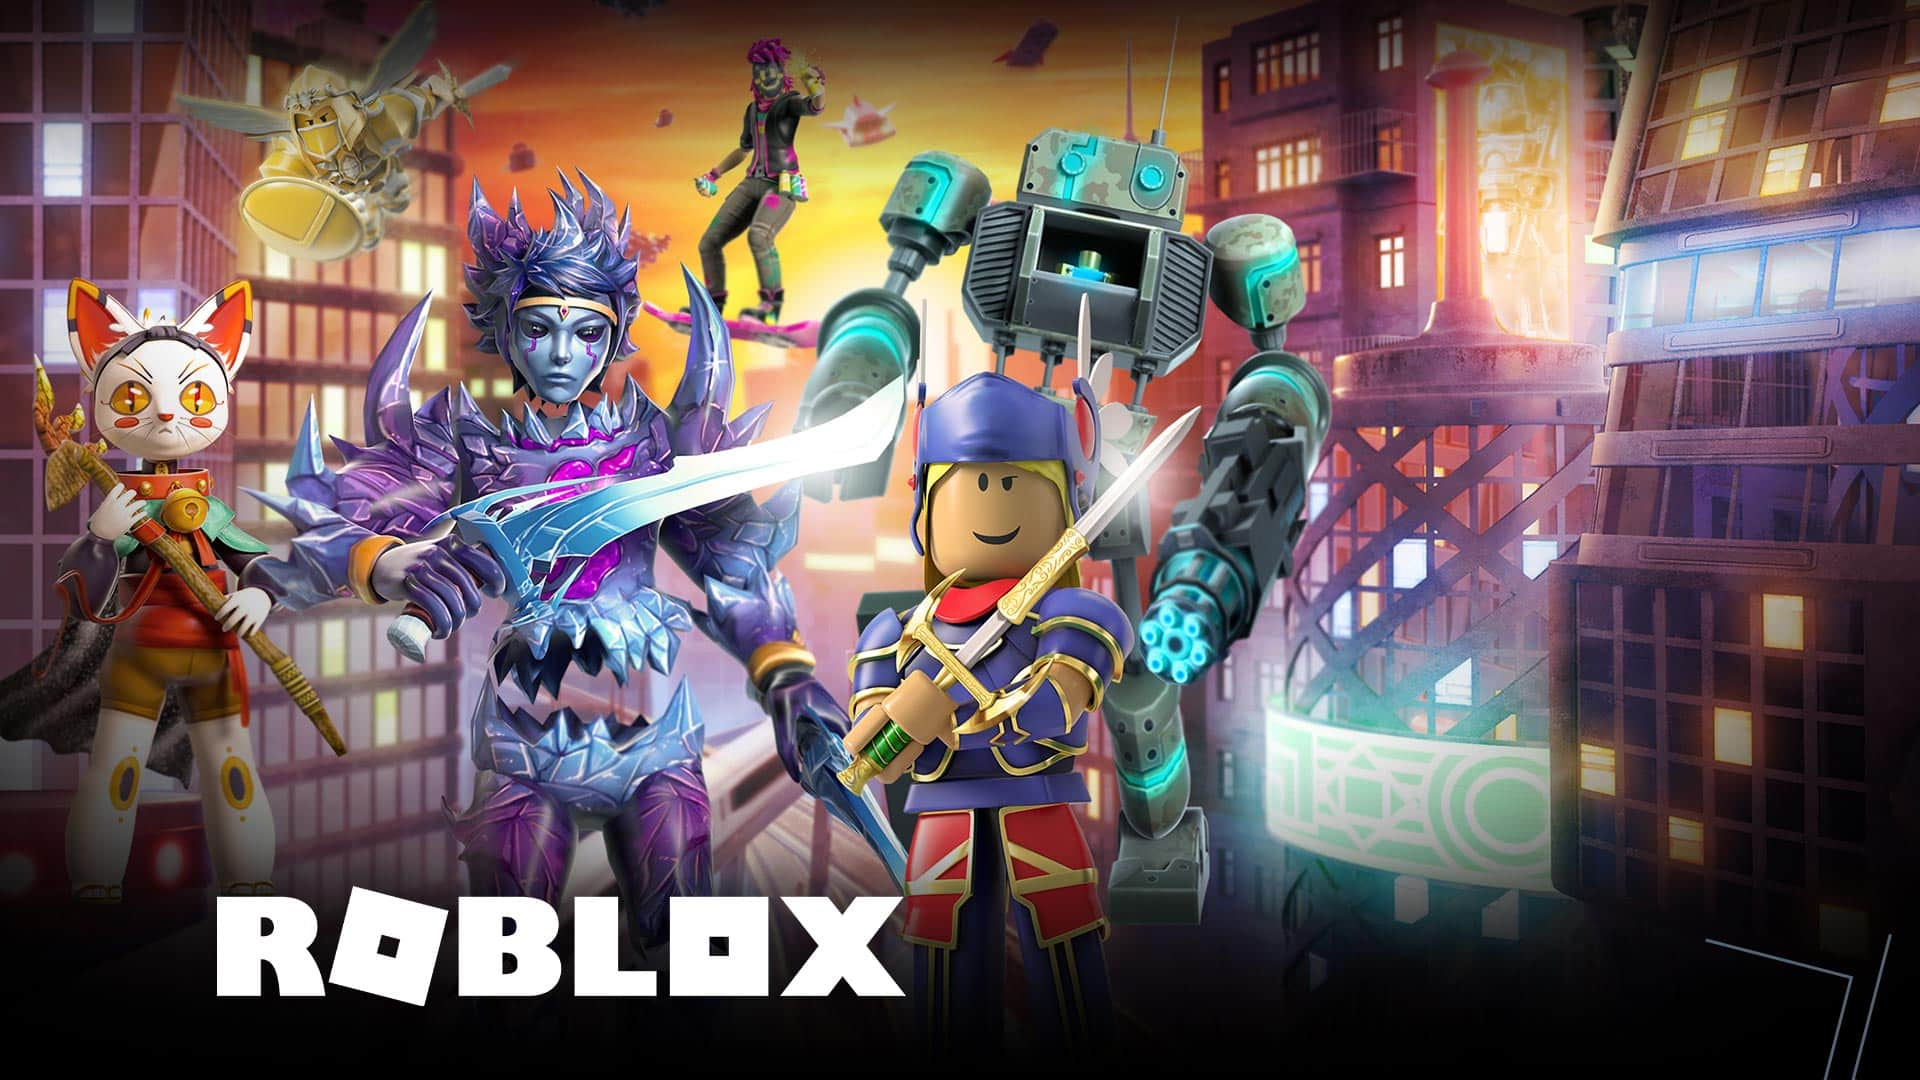 Roblox stock $41 billion evaluation no one talking about its massive success